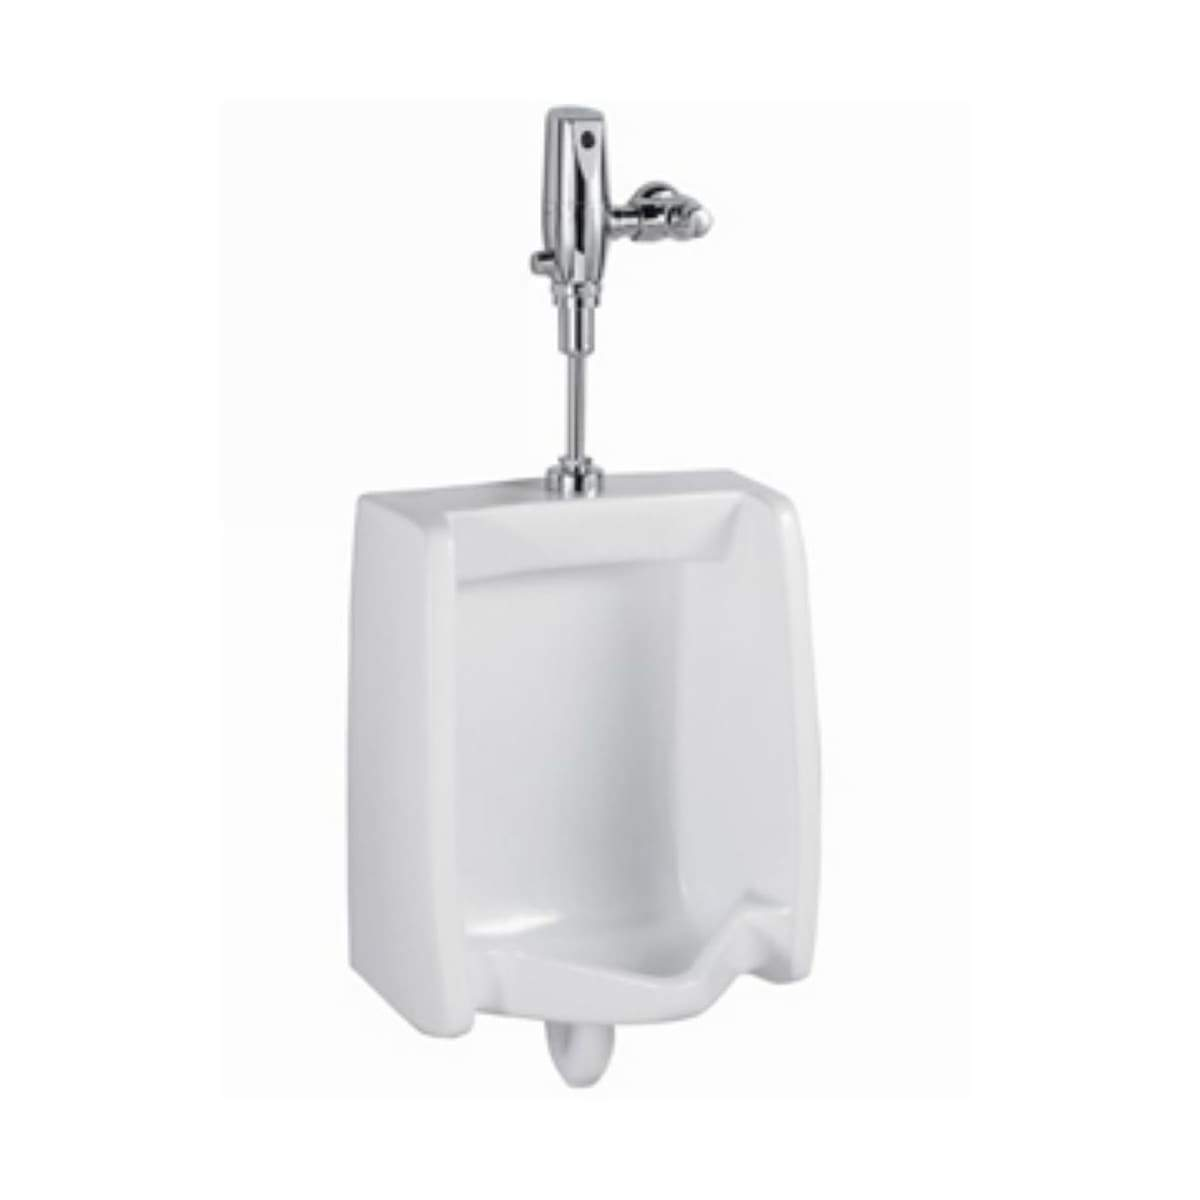 White Washbrook FloWise 0.125 GPF Ultra High Efficiency Pint Urinal System with Selectronic Urinal Flush Valve and Urinal Fixture